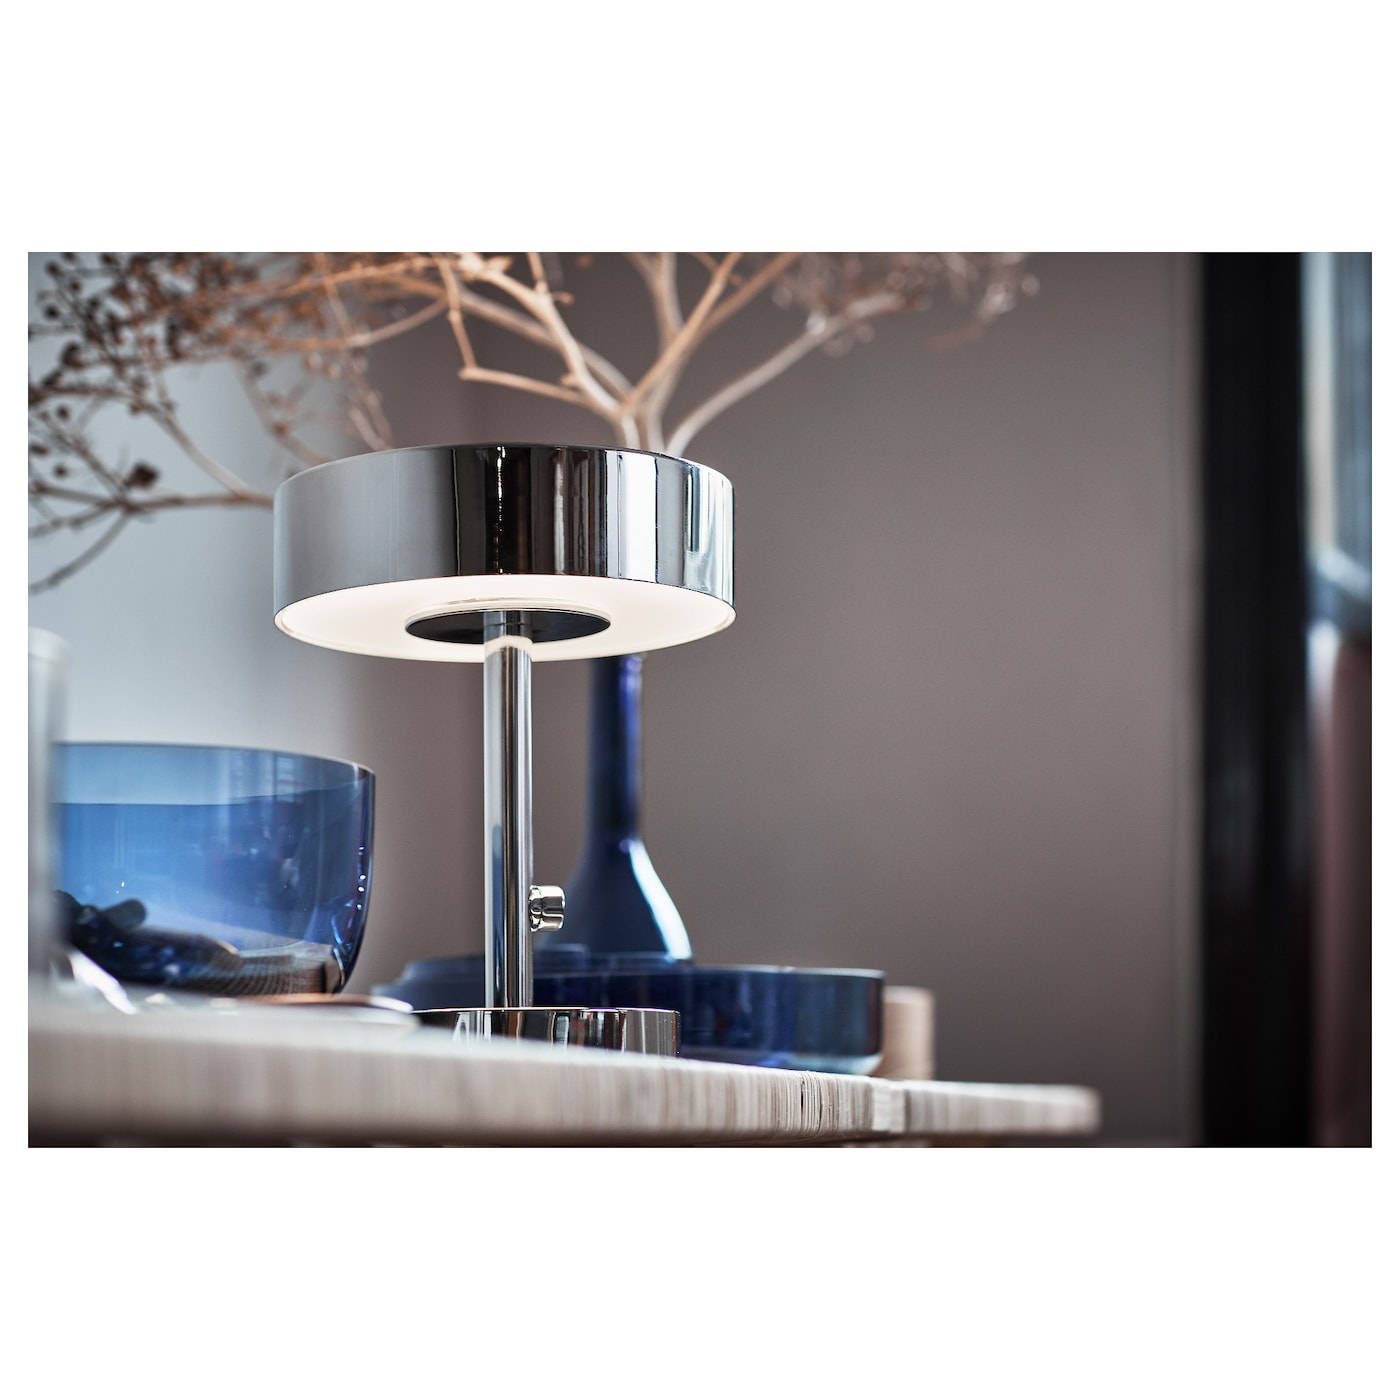 IKEA STOCKHOLM 2017 table lamp Integrated dimmer, to give general light or mood light.